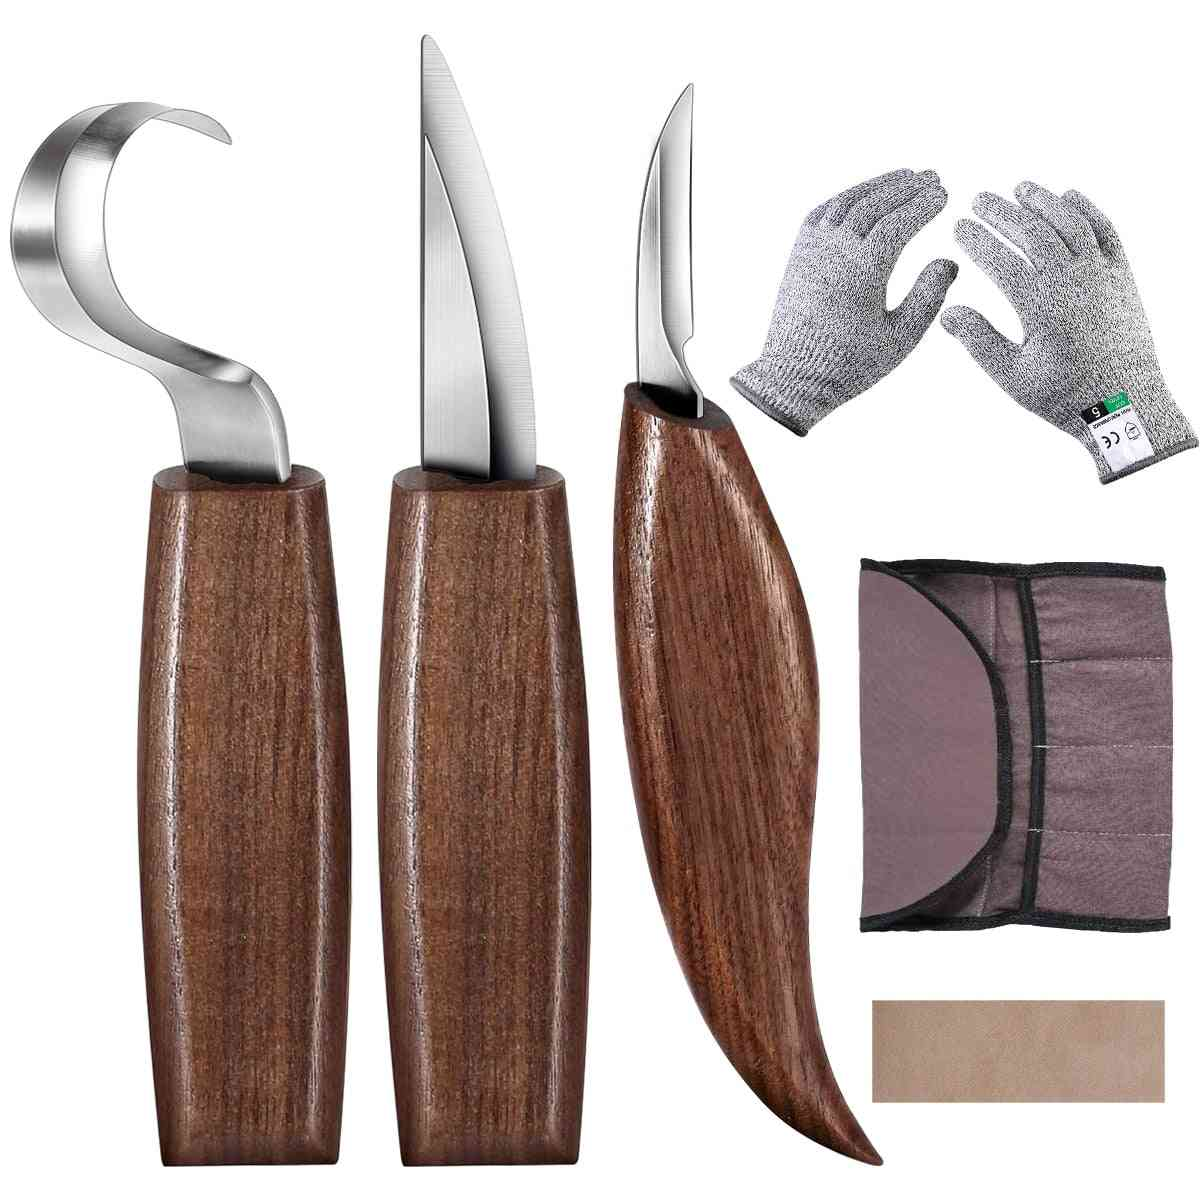 Chisel Woodworking Cutter Hand Tool Set